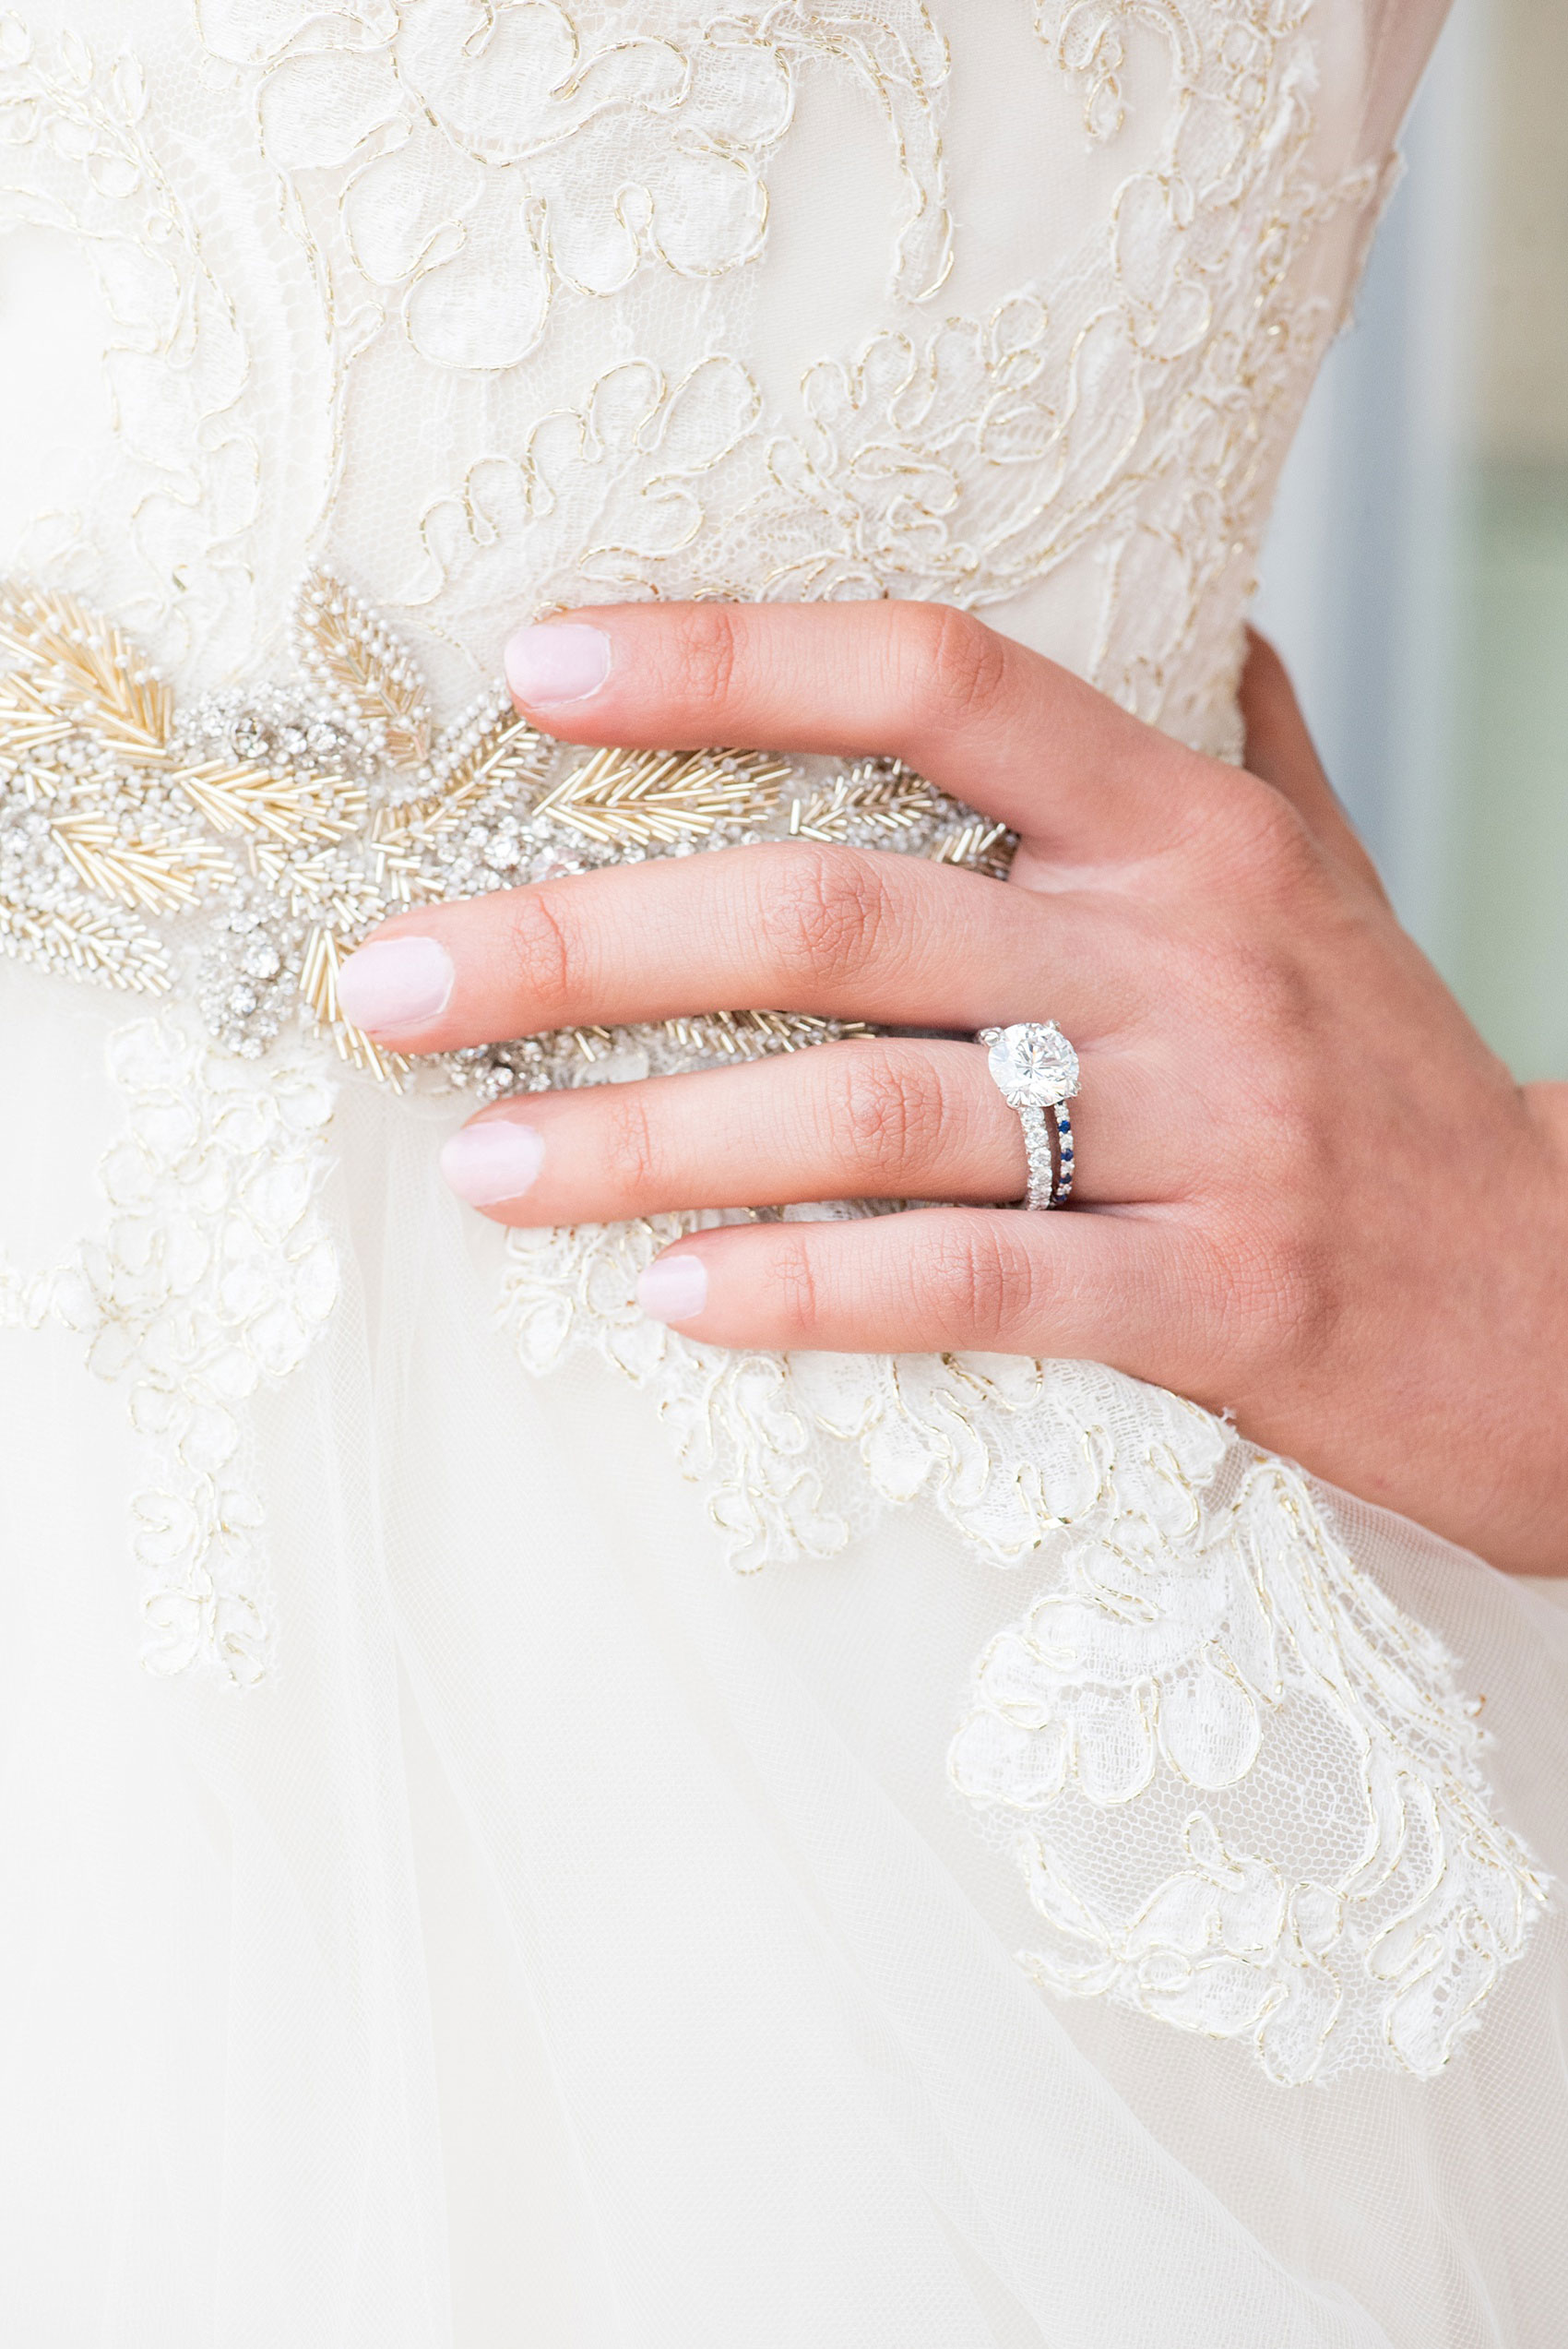 The Glass Box Raleigh wedding photos by Mikkel Paige Photography. Picture of the bride's Lazaro gown beading detail and diamond engagement ring and sapphire band.